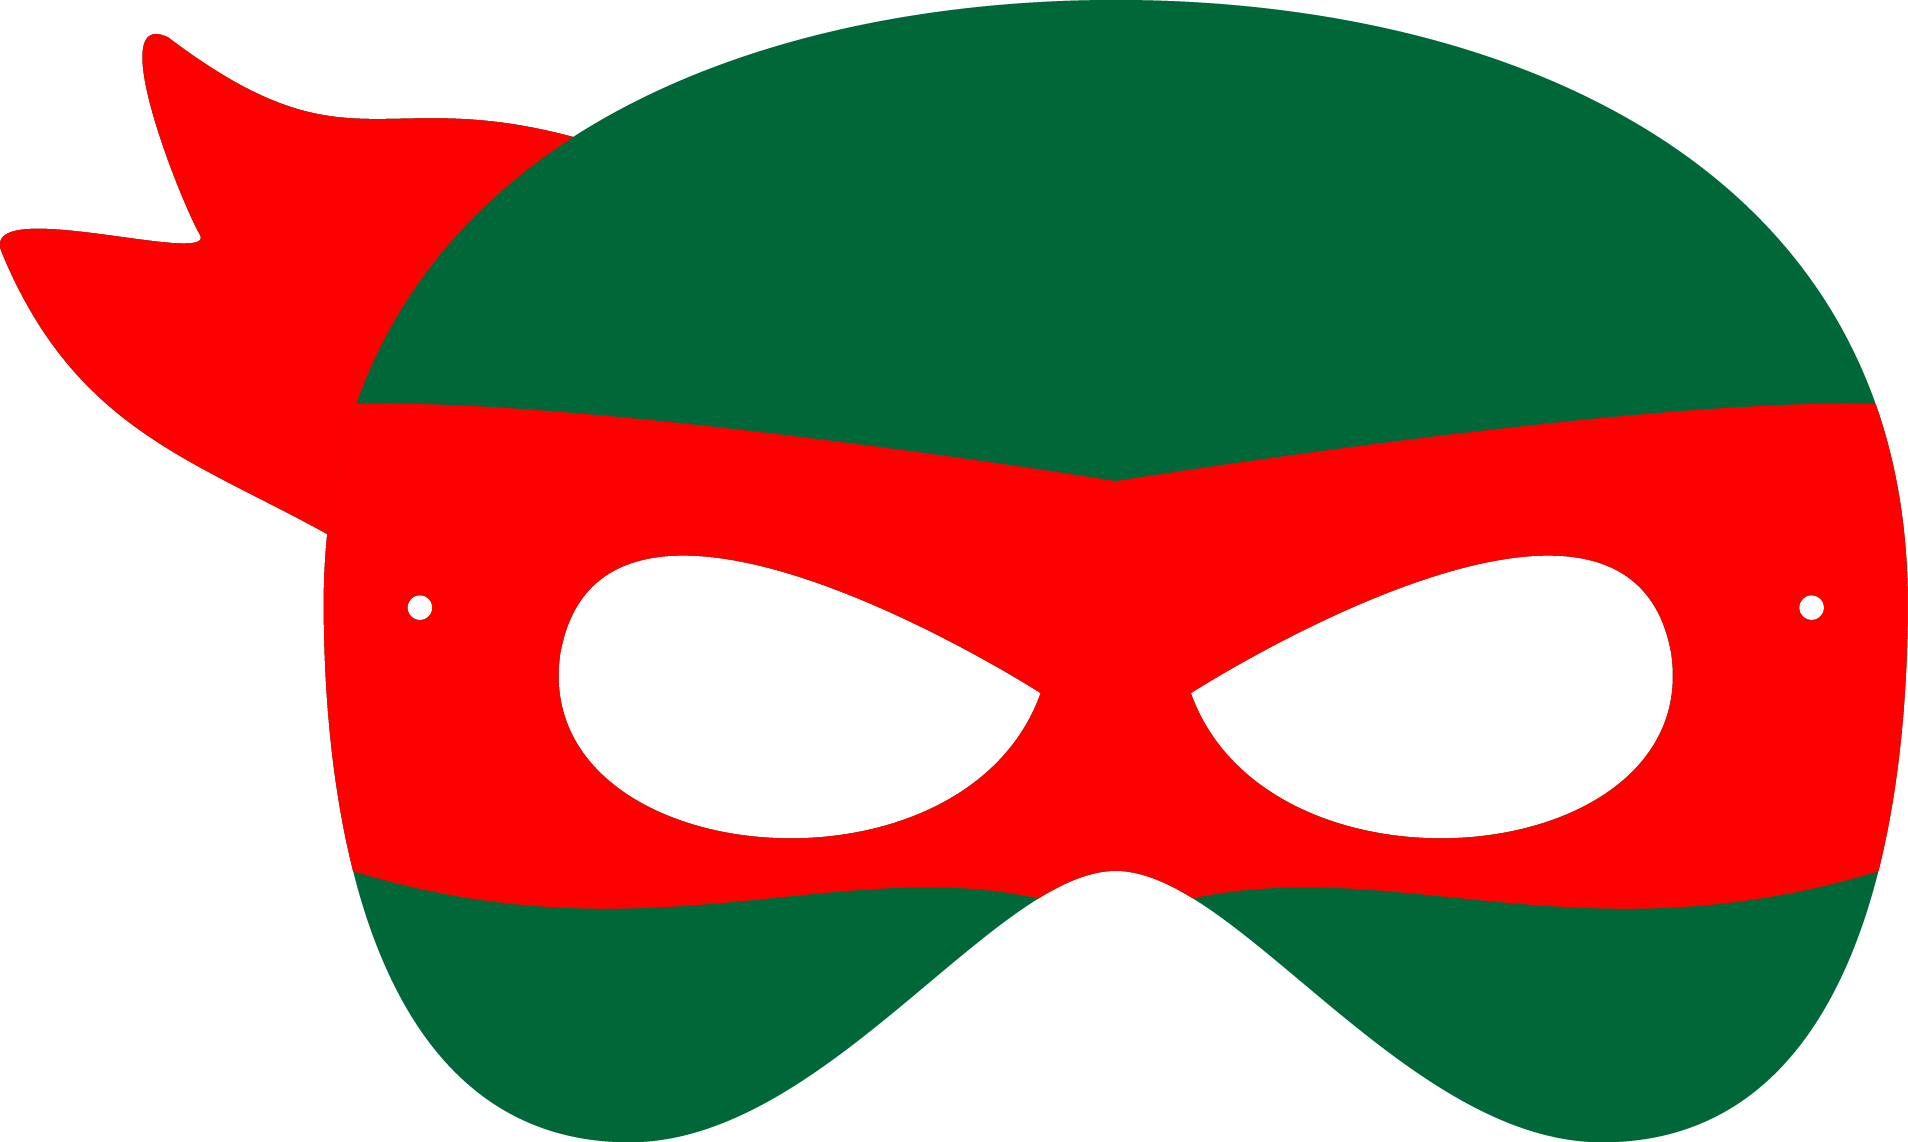 Irresistible image pertaining to ninja turtles mask printable